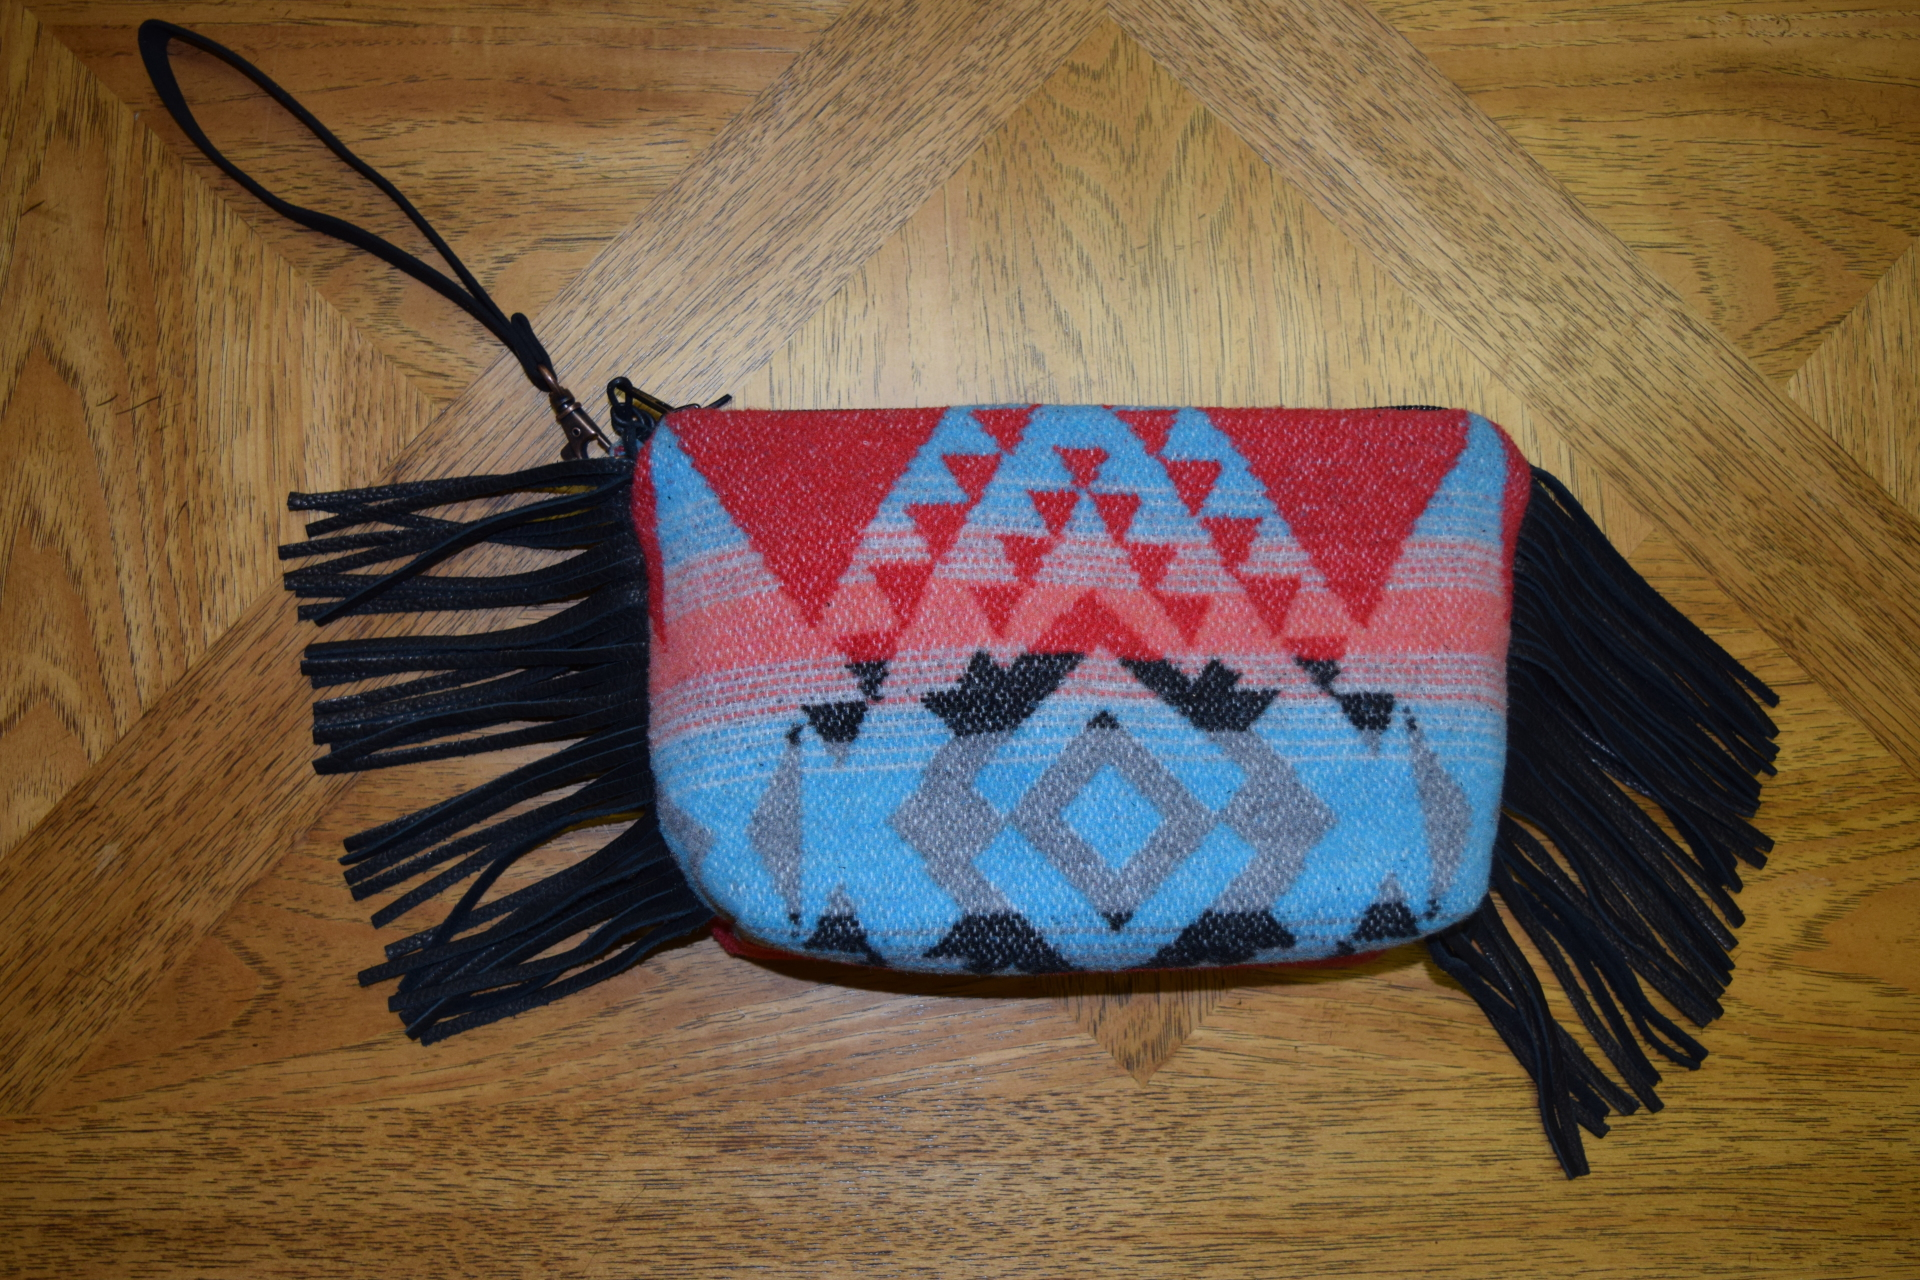 #B08YM - YUMA WRISTLET/CLUTCH ZIP BAG - $89.95